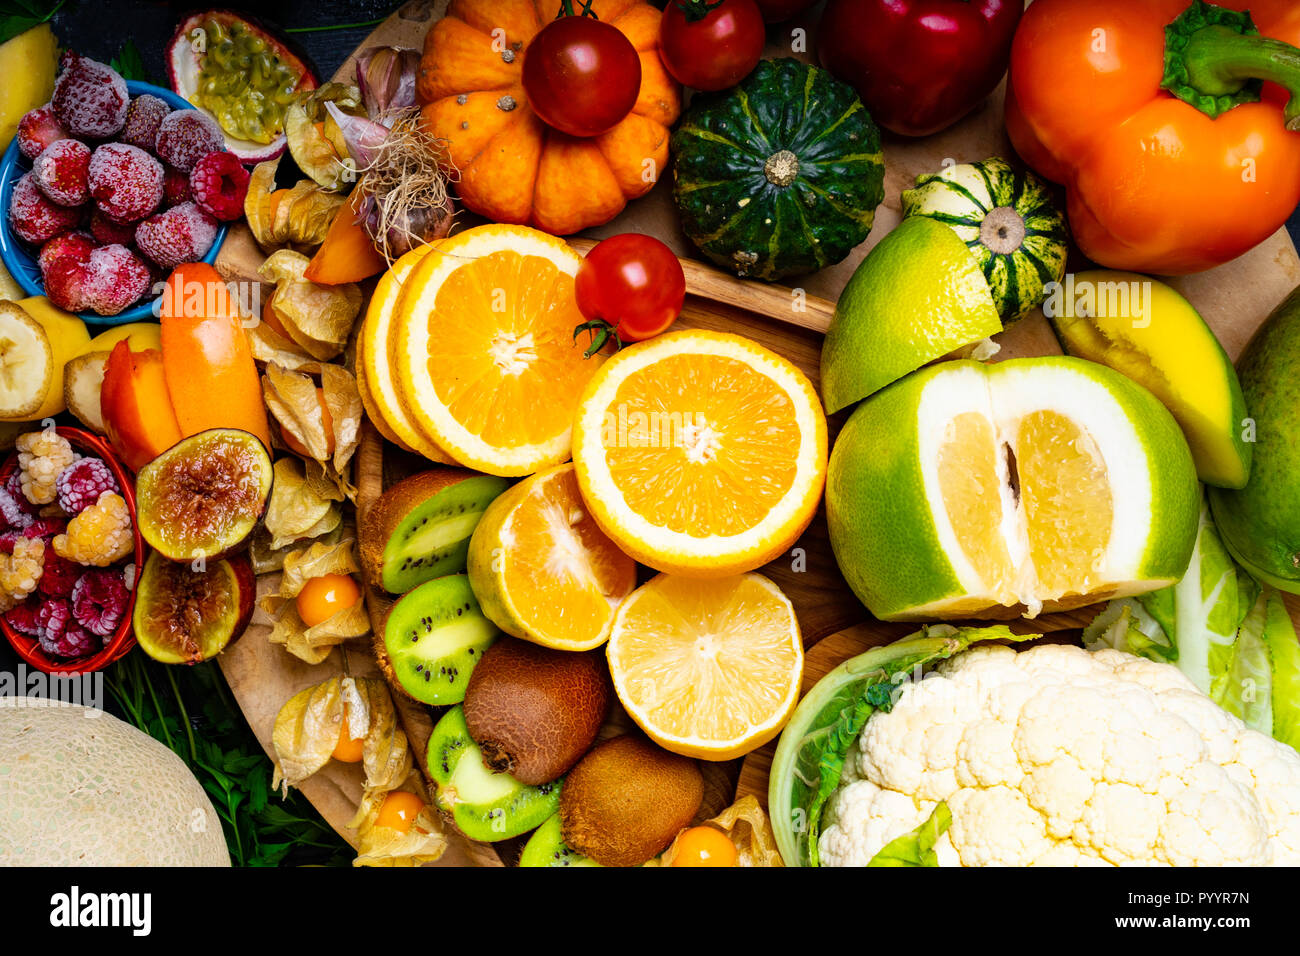 Vitamin C in fruits and vegetables. Natural products rich in vitamins and fiber, as parsley, oranges, lemons, pepper, kiwi, parsley leaves, garlic, ba - Stock Image